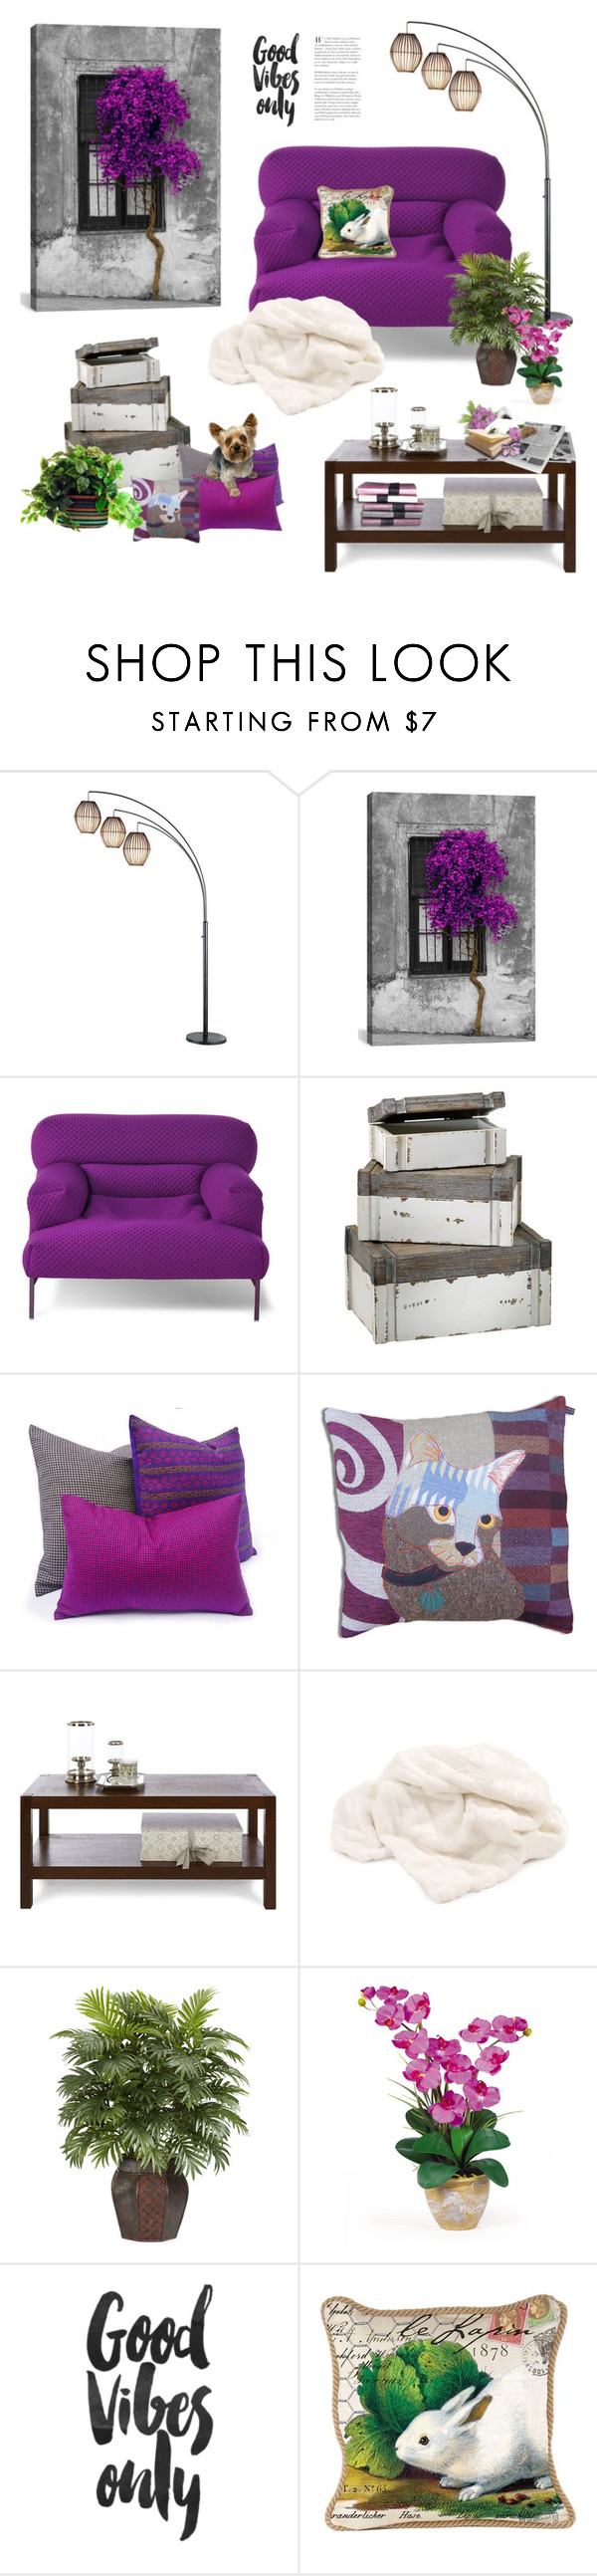 """""""Good Vibes Only"""" by maitepascual ❤ liked on Polyvore featuring interior, interiors, interior design, home, home decor, interior decorating, Adesso, iCanvas, Montis and Cyan Design"""